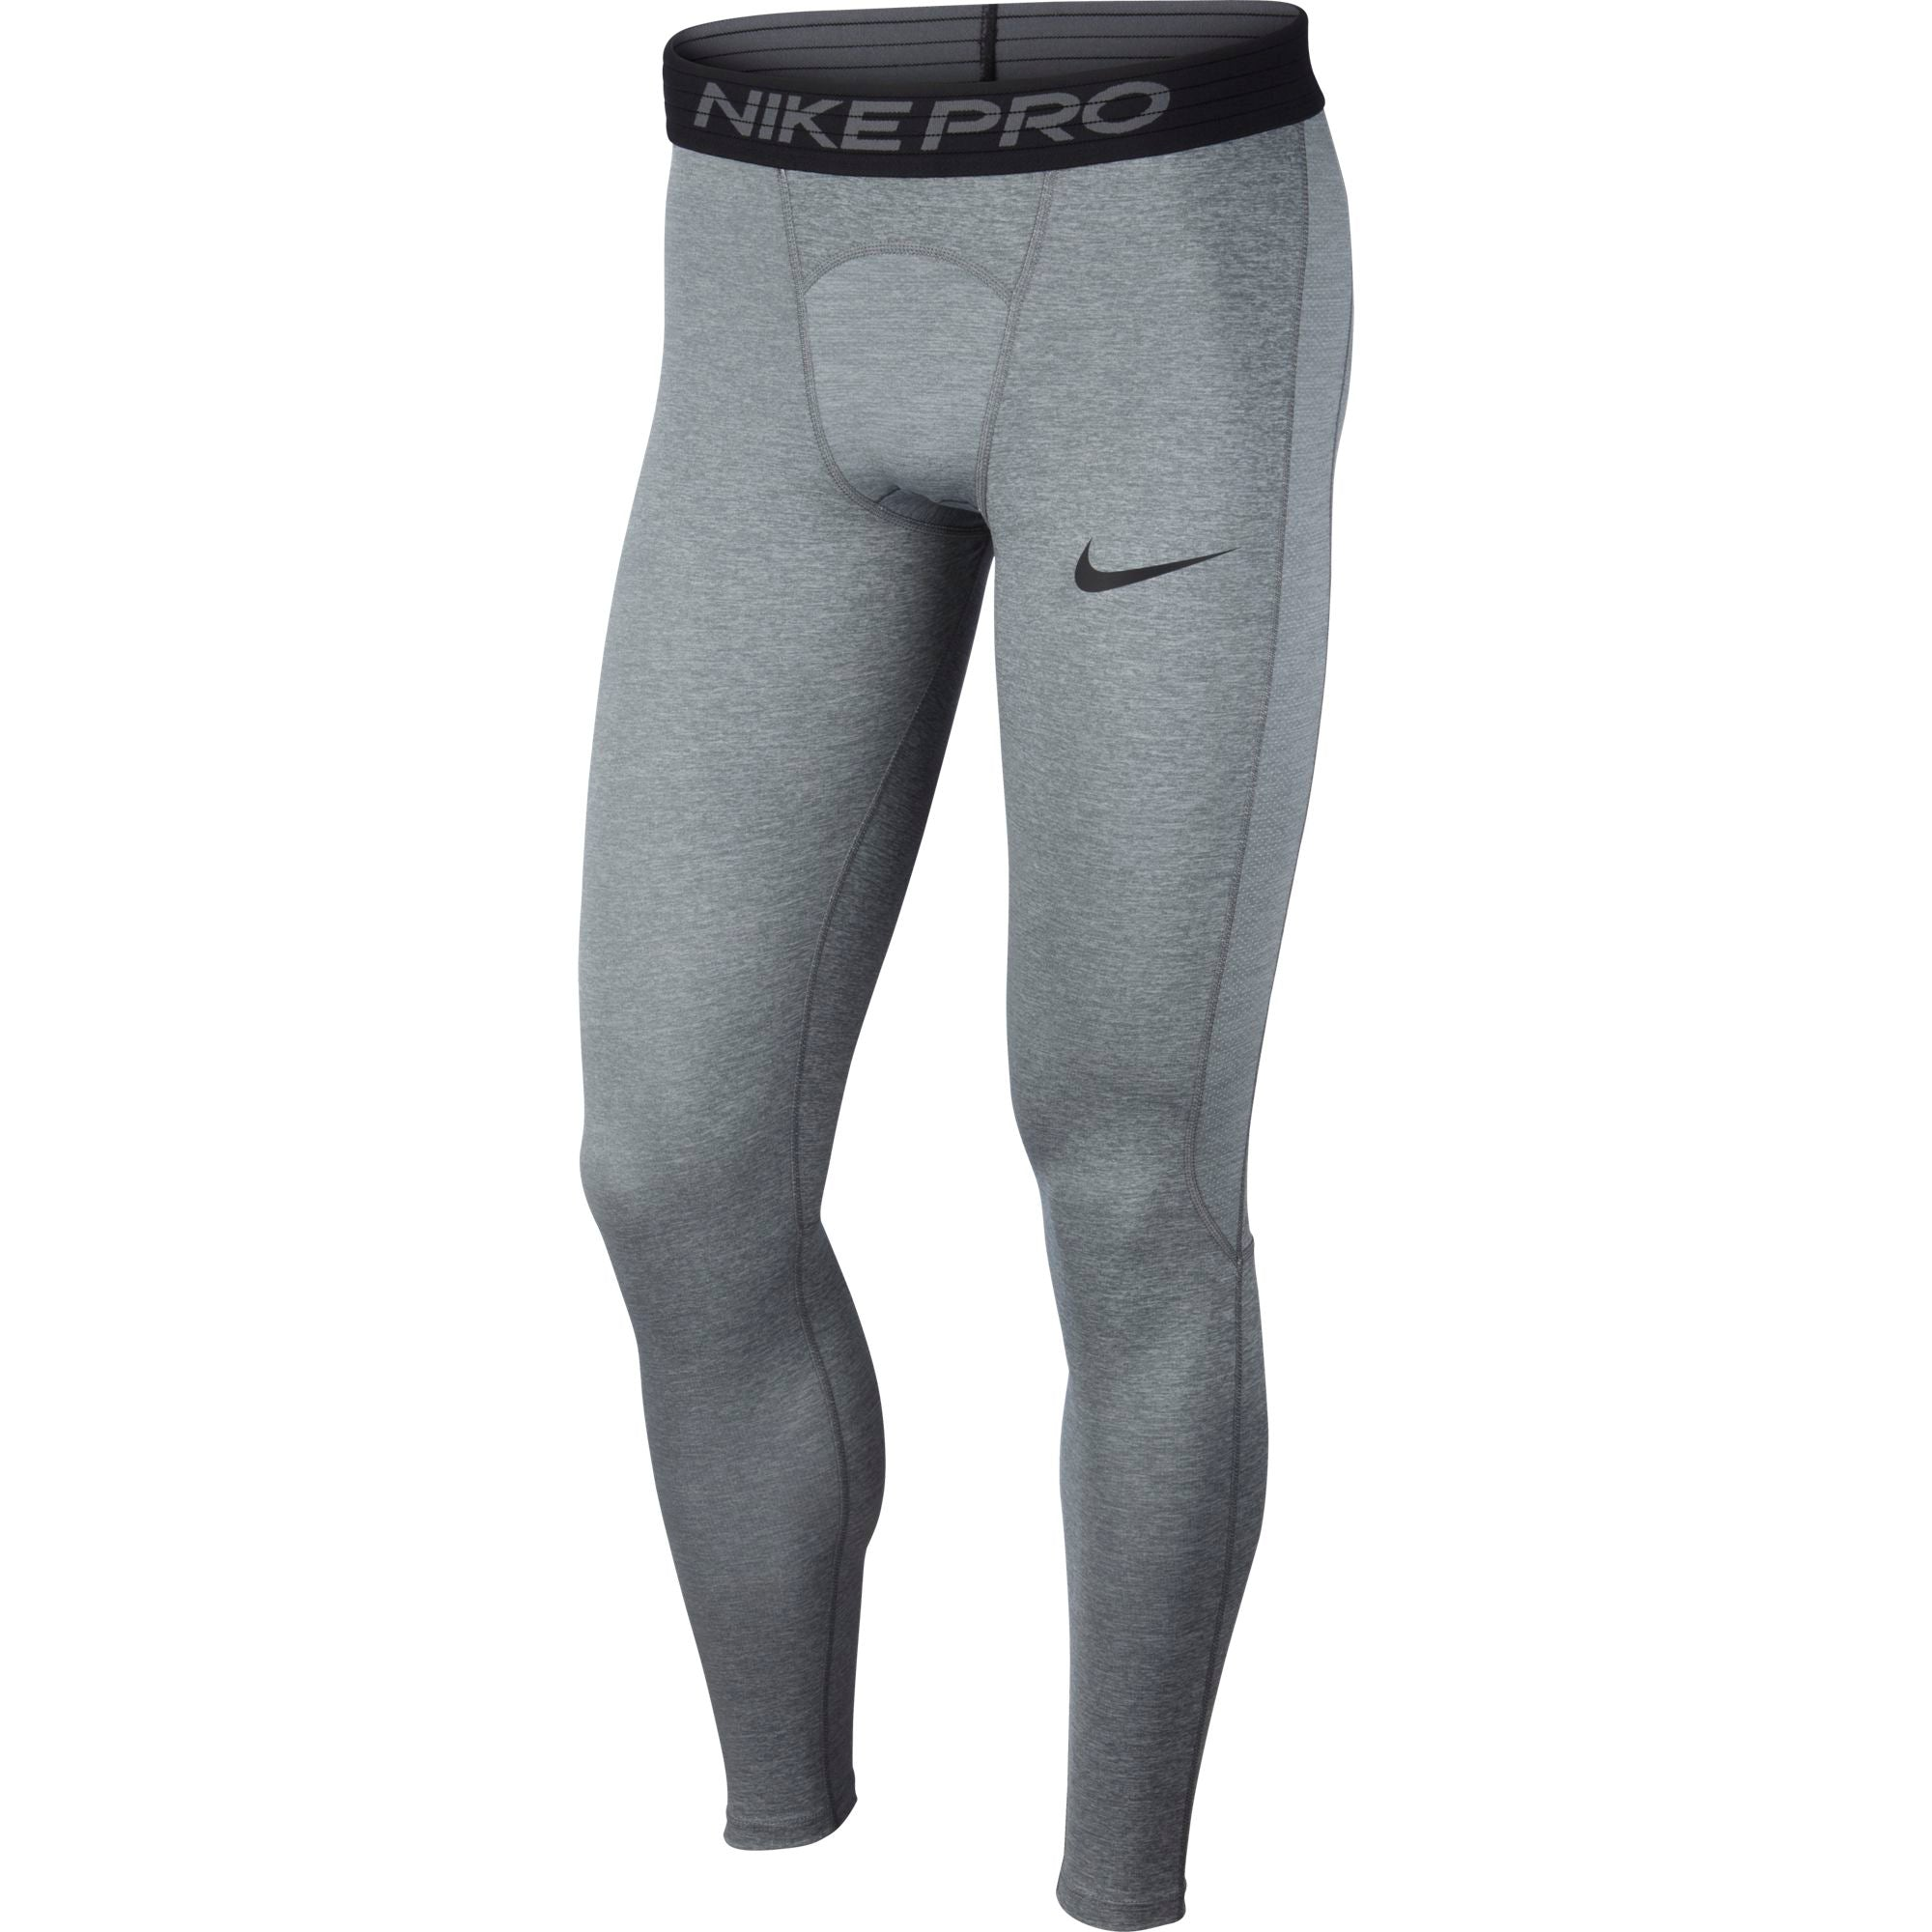 Nike Pro Tights - Smoke Grey/Light Smoke Grey/Black NK-BV5641-085